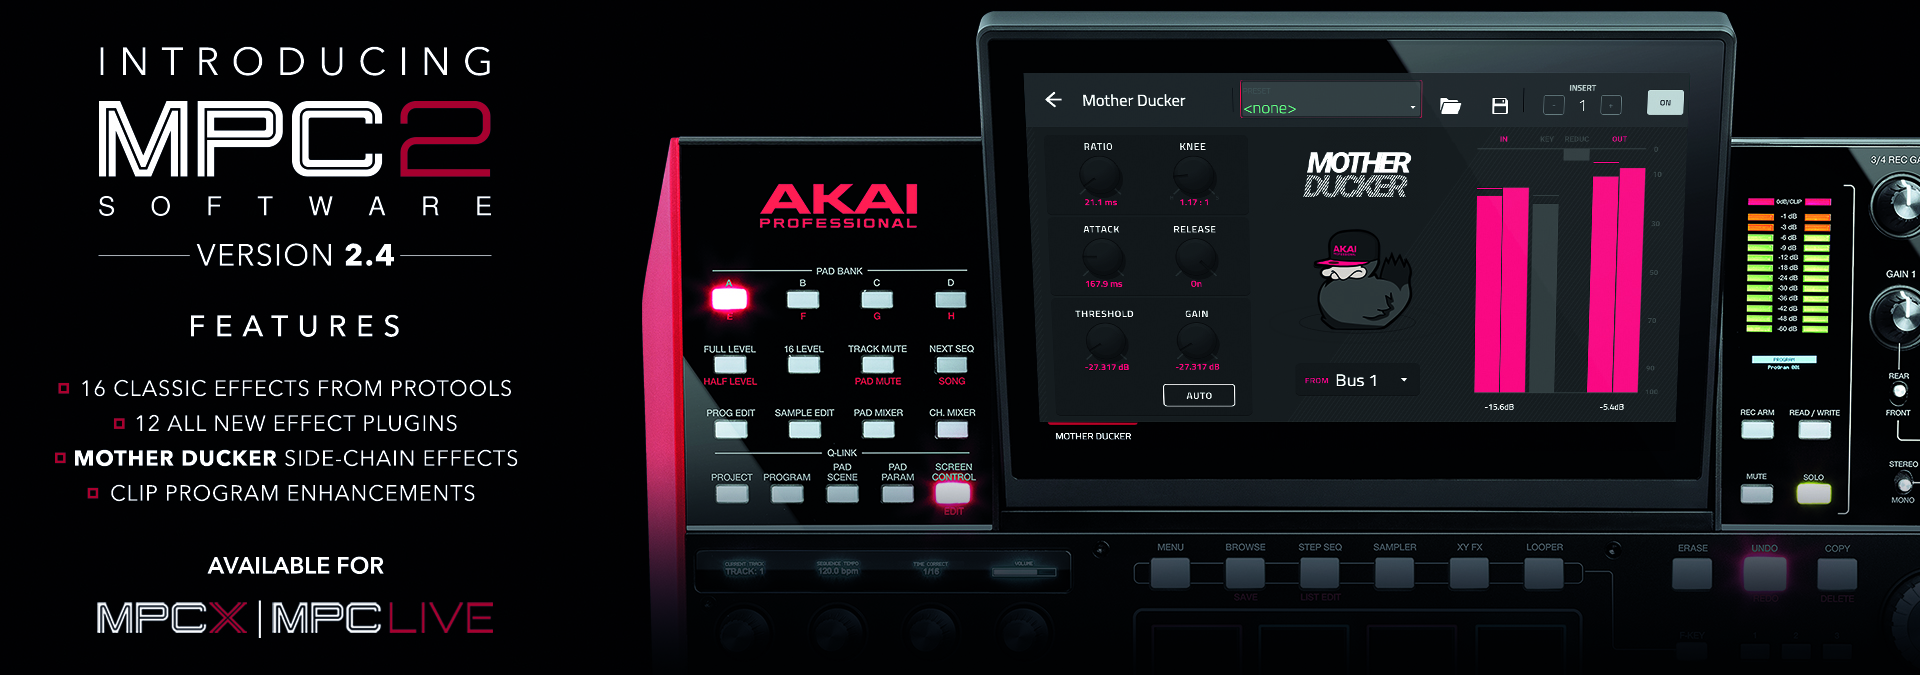 AKAI PROFESSIONAL Greatly Expands the Standalone MPC